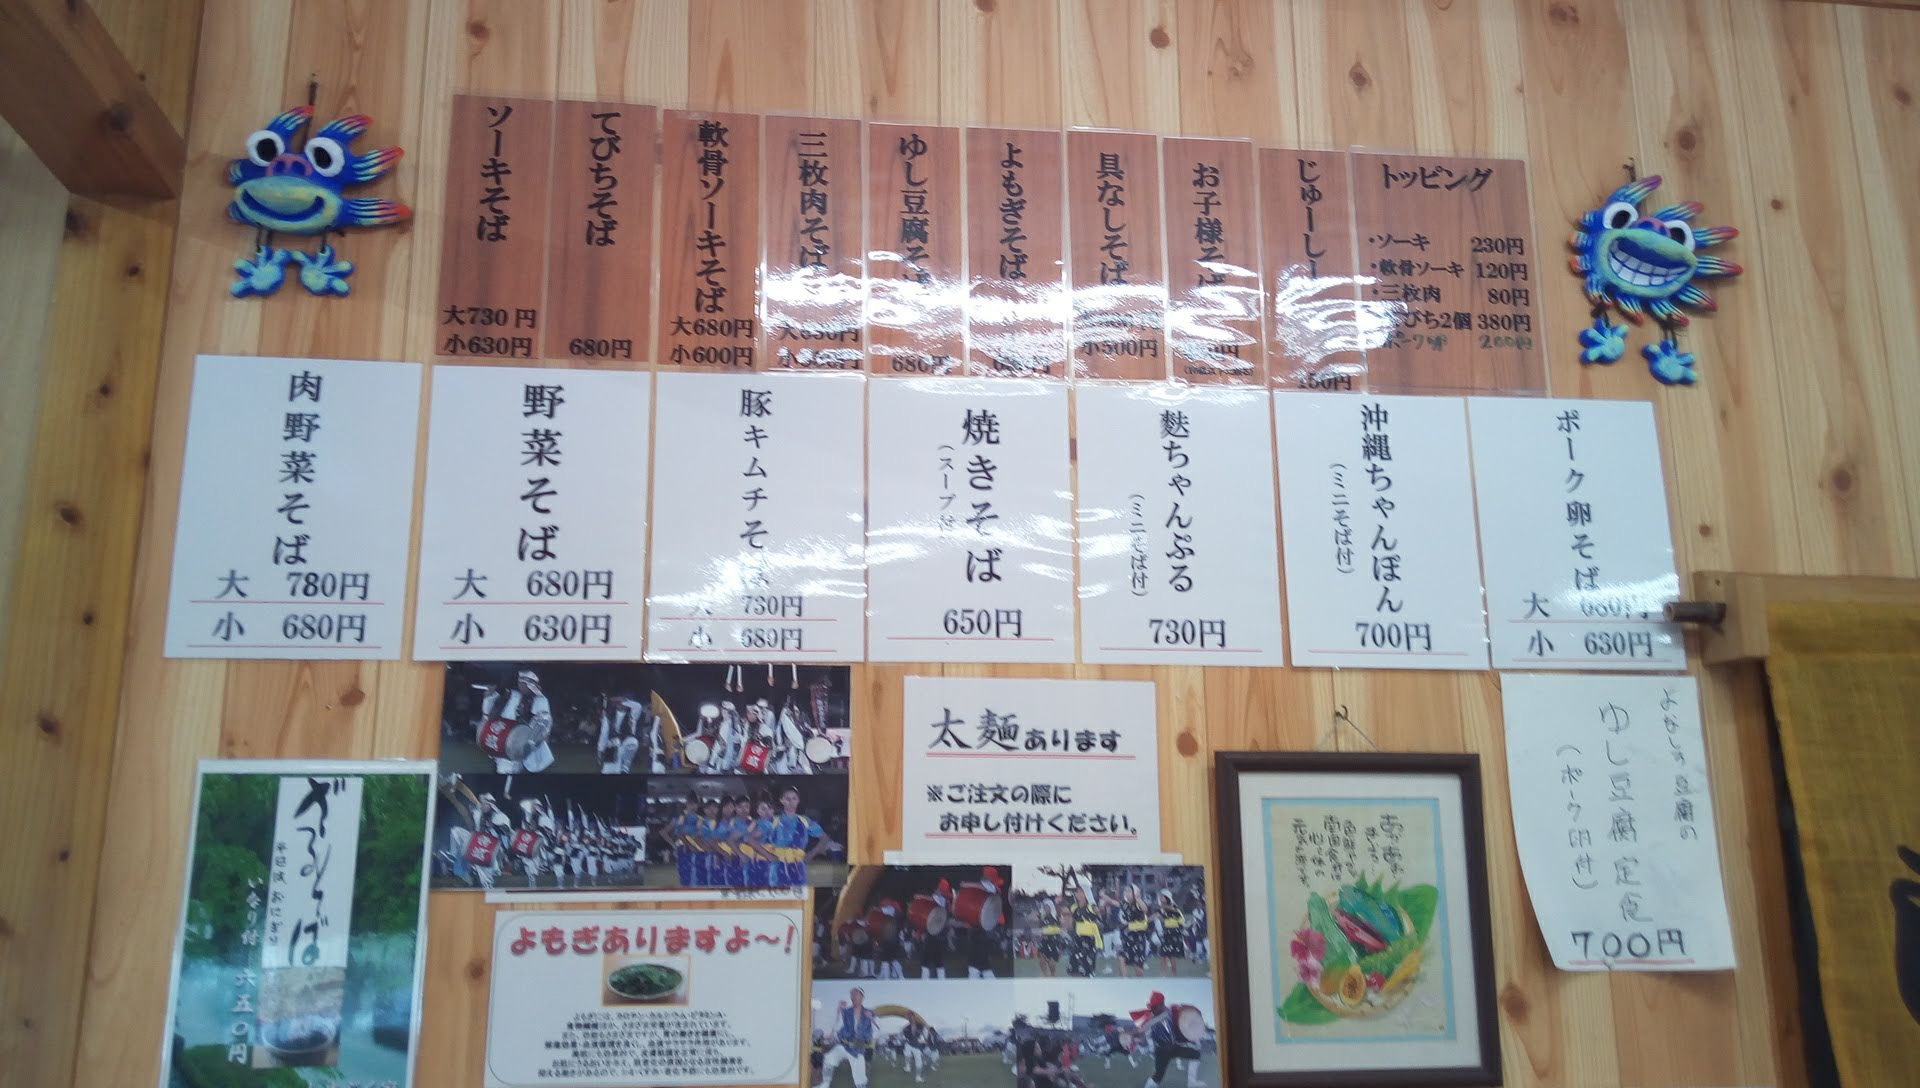 The menu of Shimabukuya